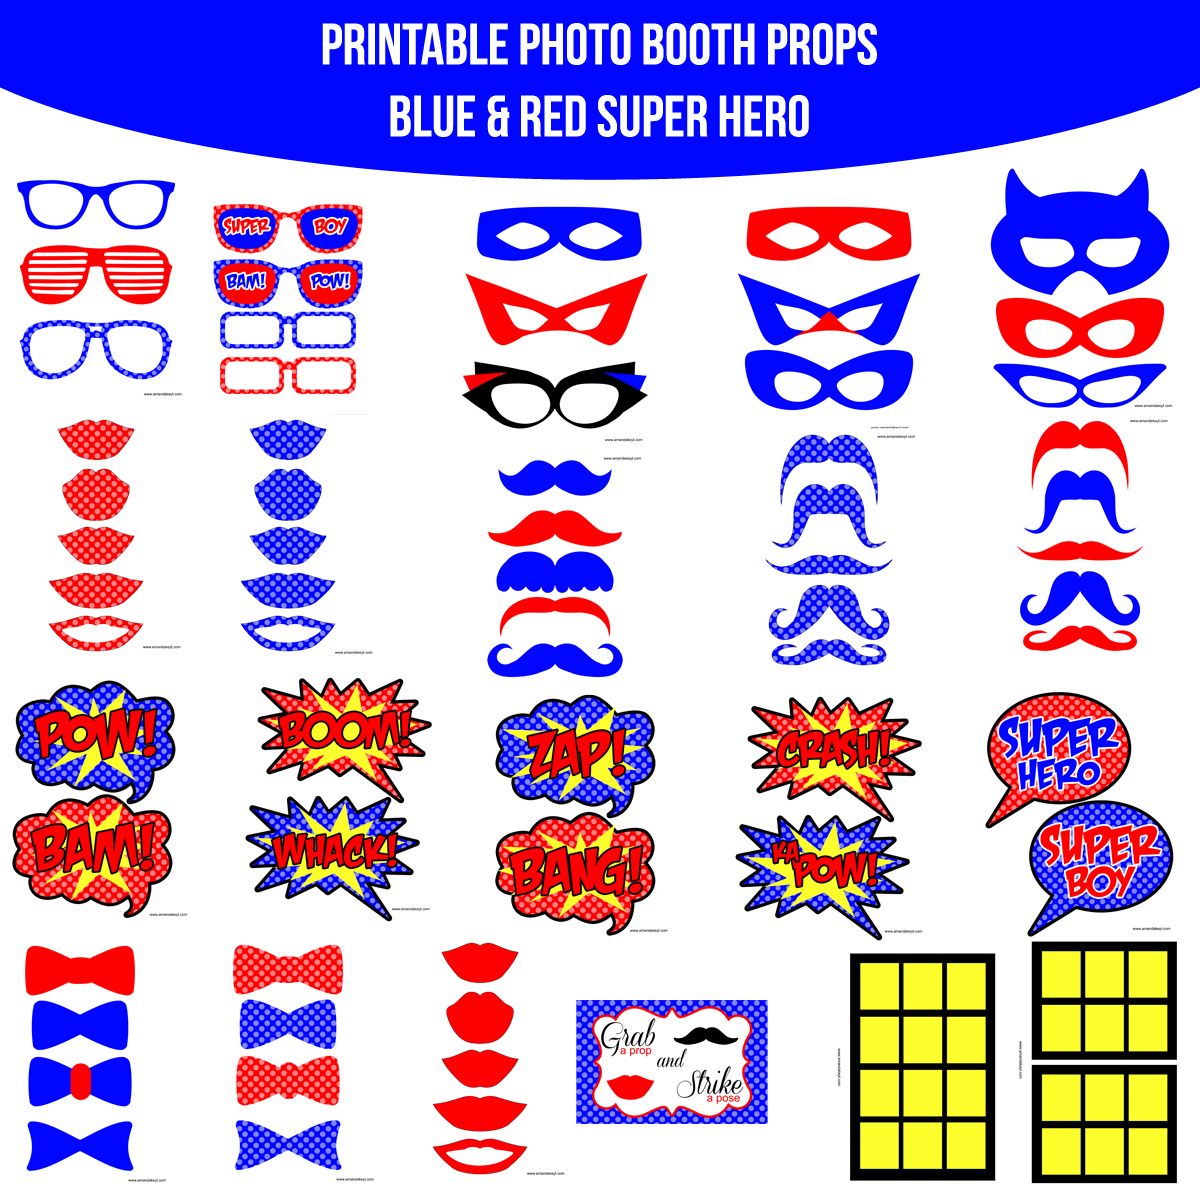 See the Set - To View The Whole Super Hero Blue Printable Photo Booth Prop Set Click Here